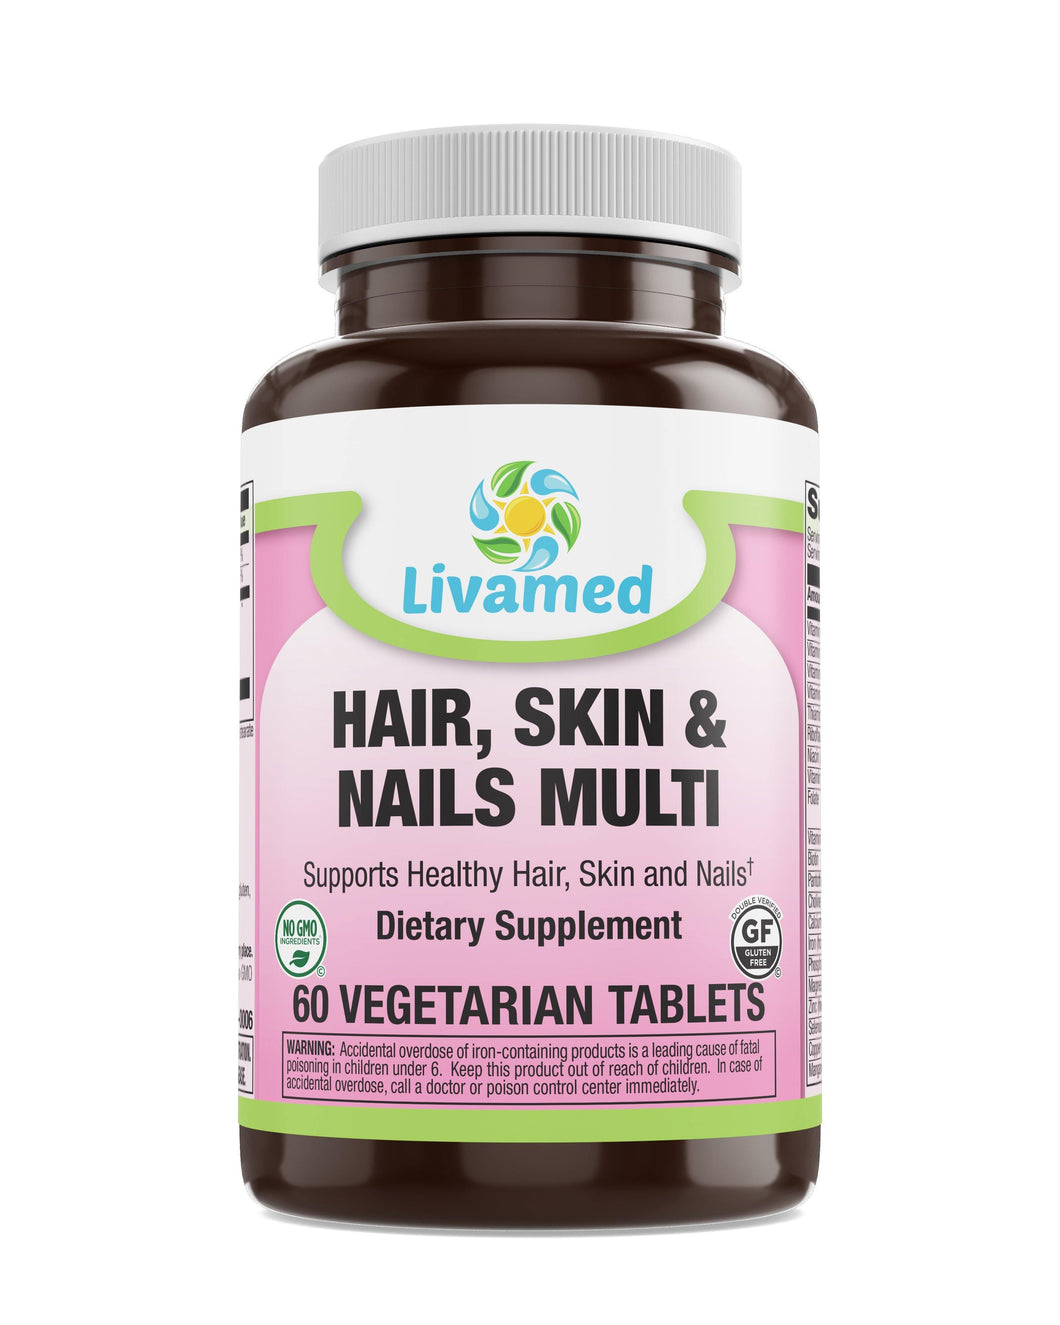 Livamed - Hair, Skin & Nails Multivitamin with Trace Minerals Veg Tabs - Livamed Vitamins